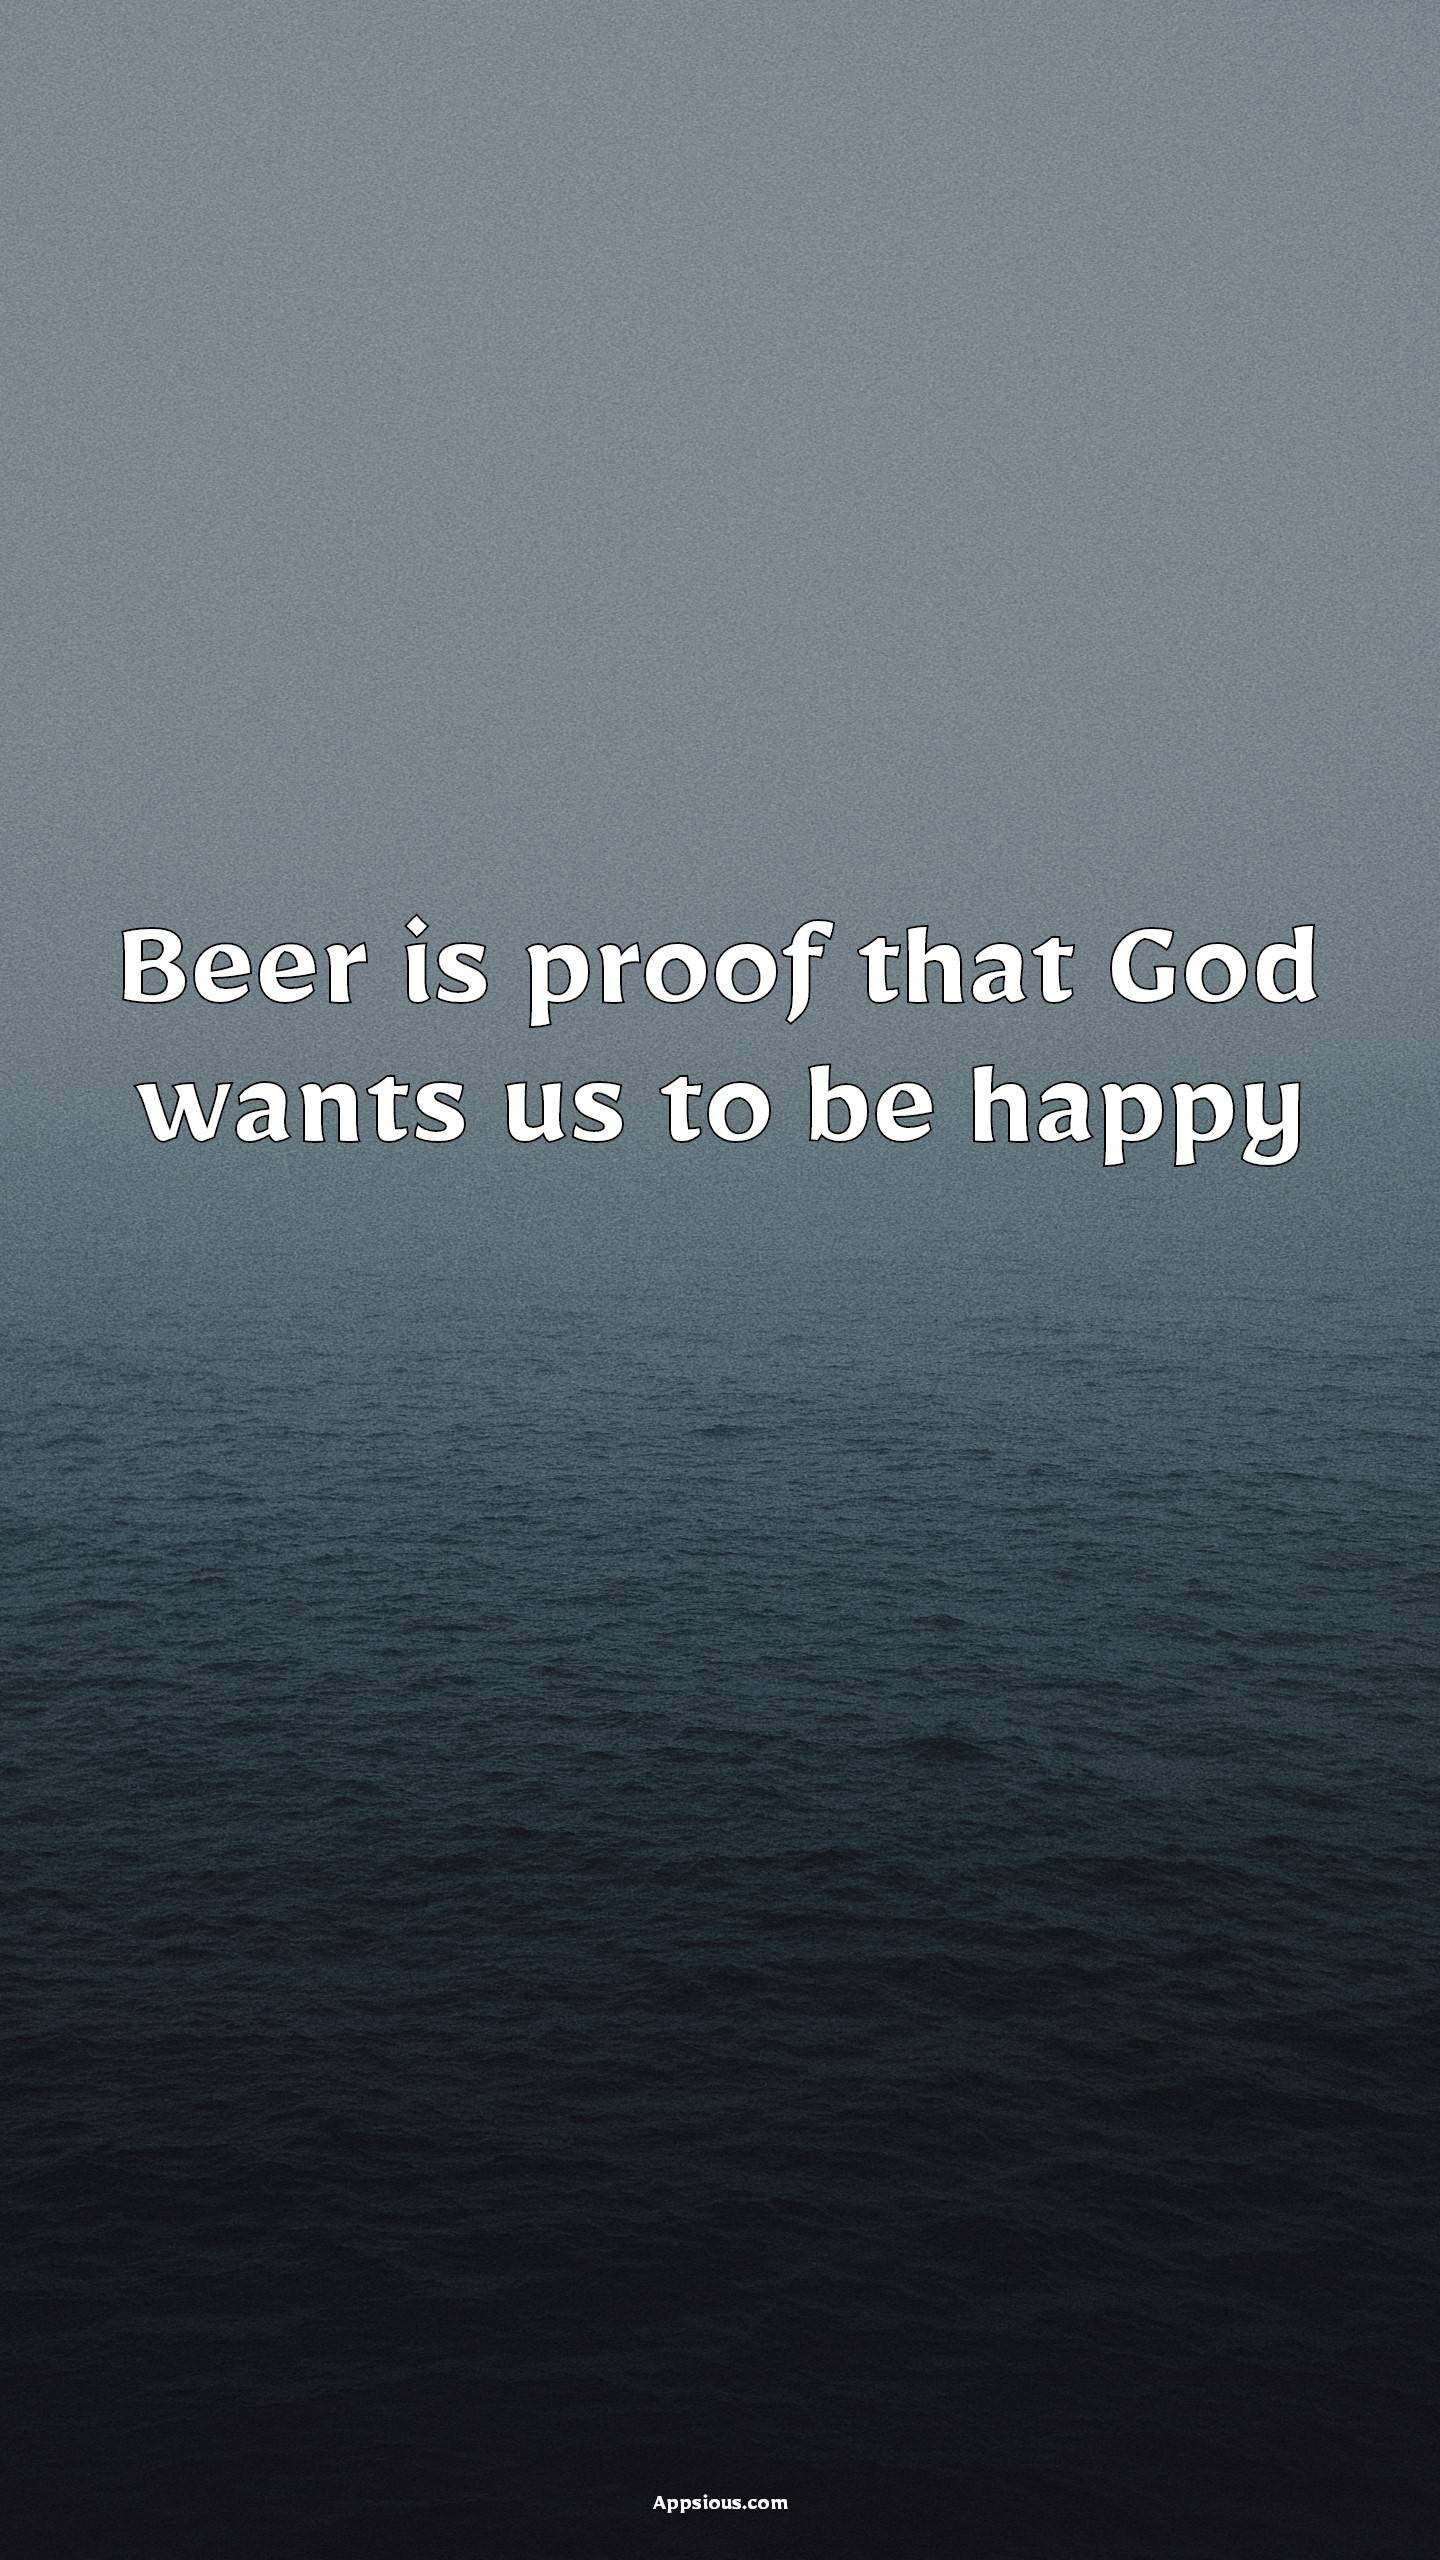 Beer is proof that God wants us to be happy